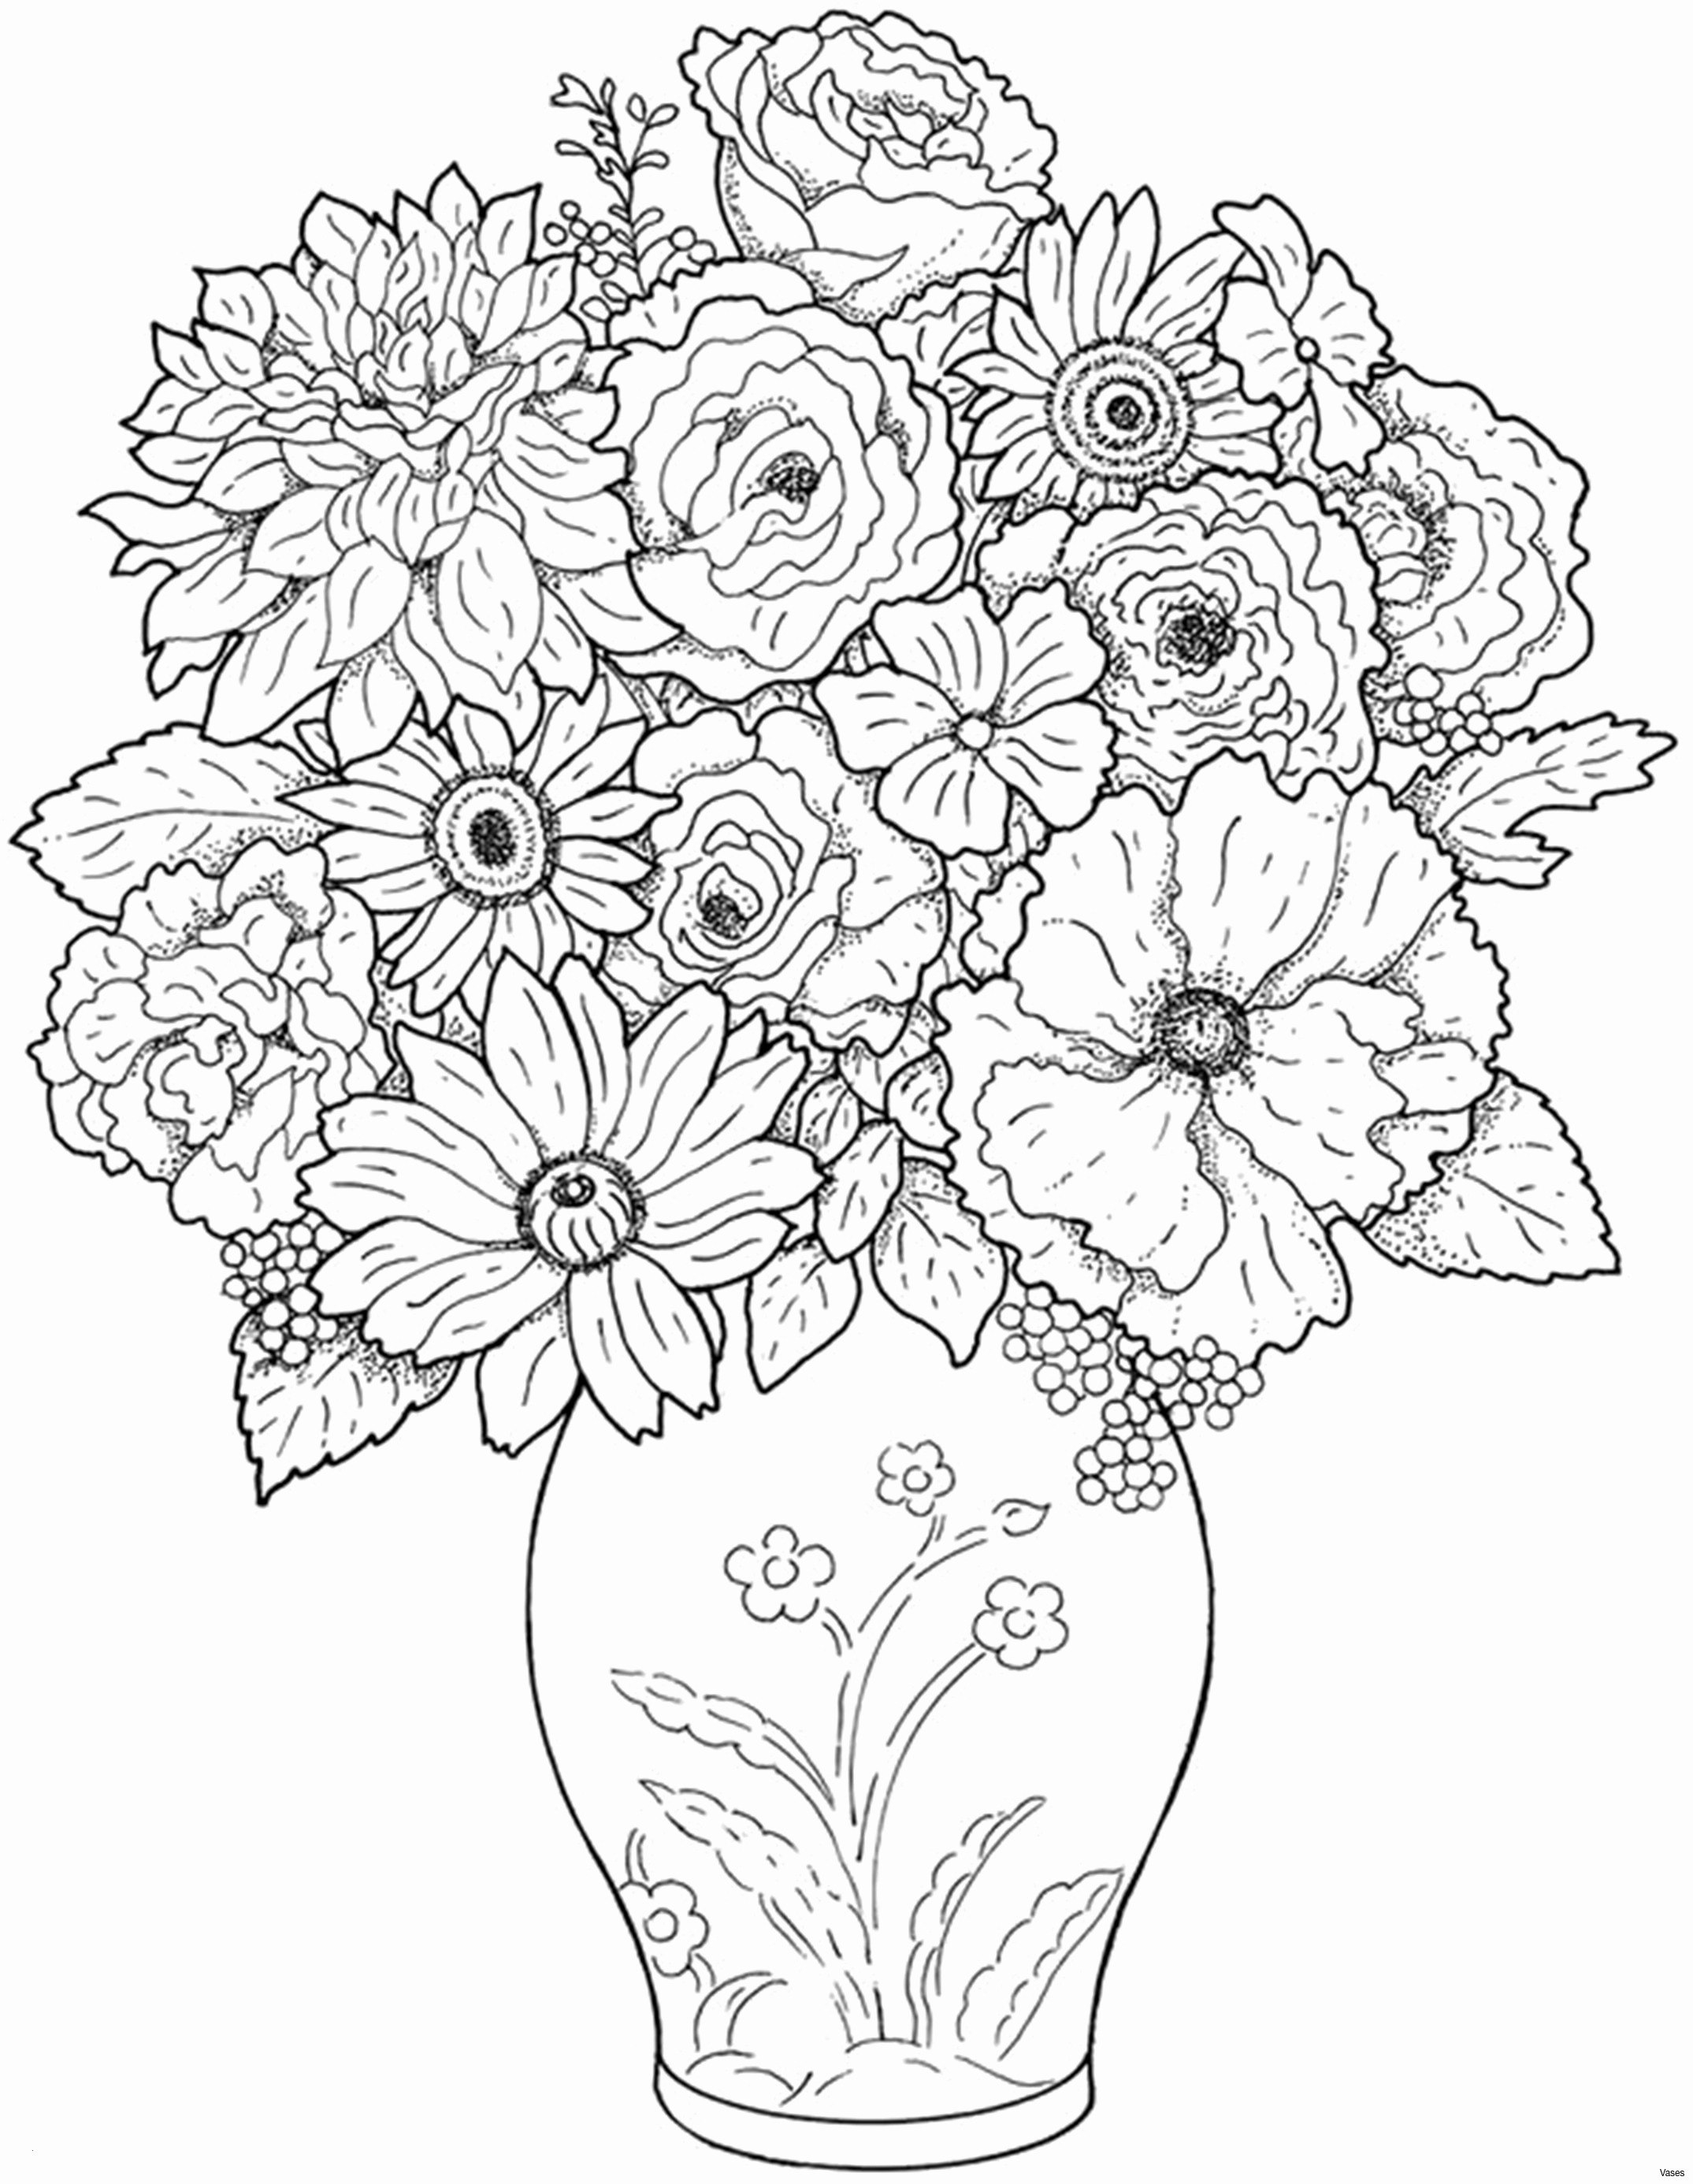 printable lighthouse coloring pages Download-36 Awesome Coloring Books for Kindergarten cloud9vegas Free Coloring Pages Printables 20-g